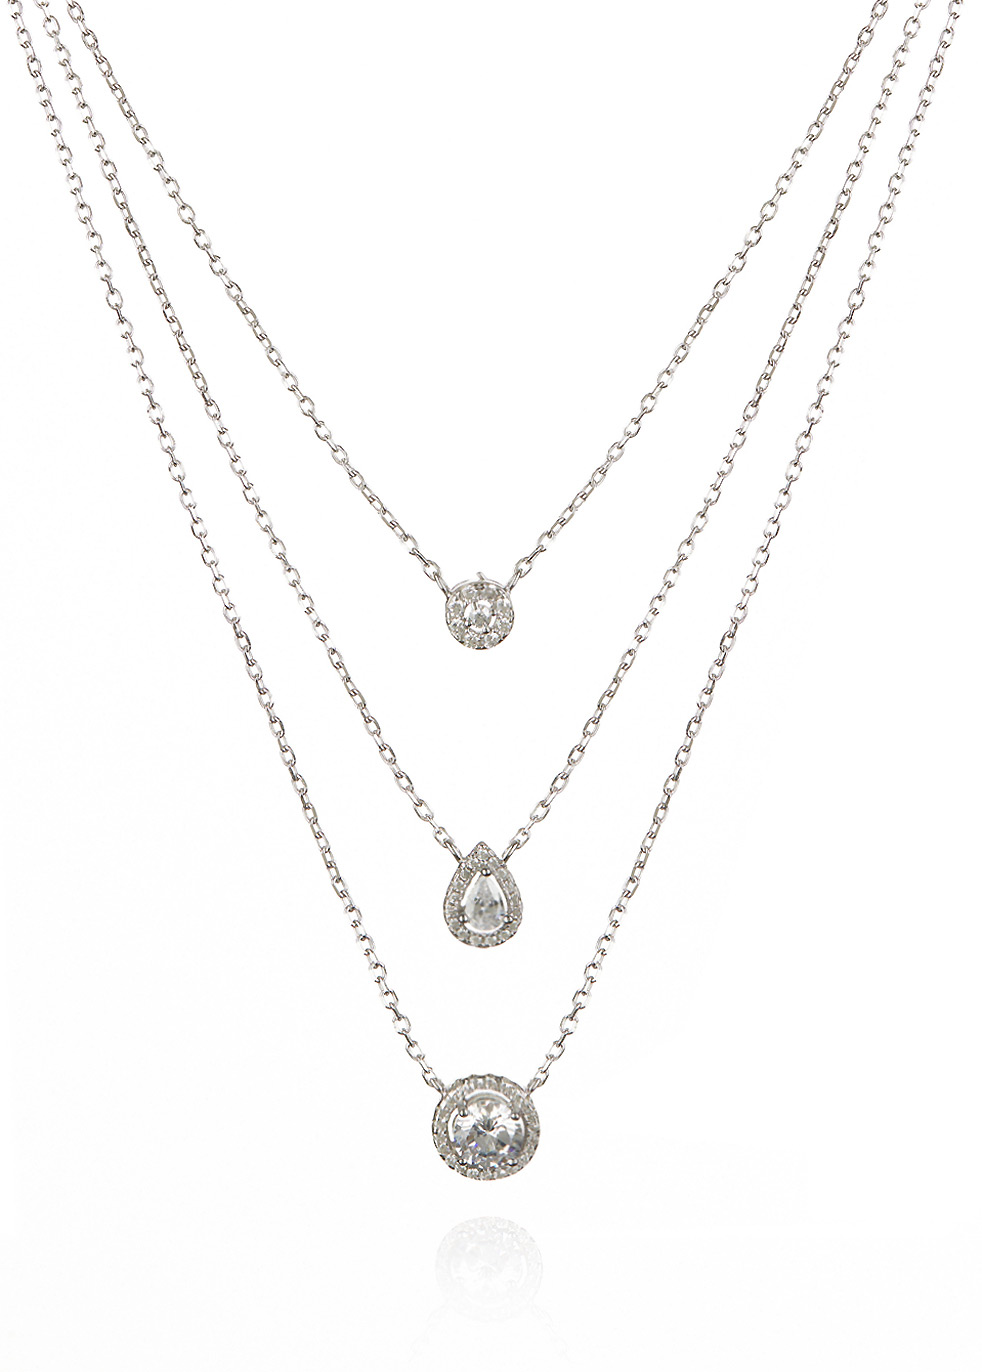 APPLES & FIGS LAYERED SOLITAIRE NECKLACE